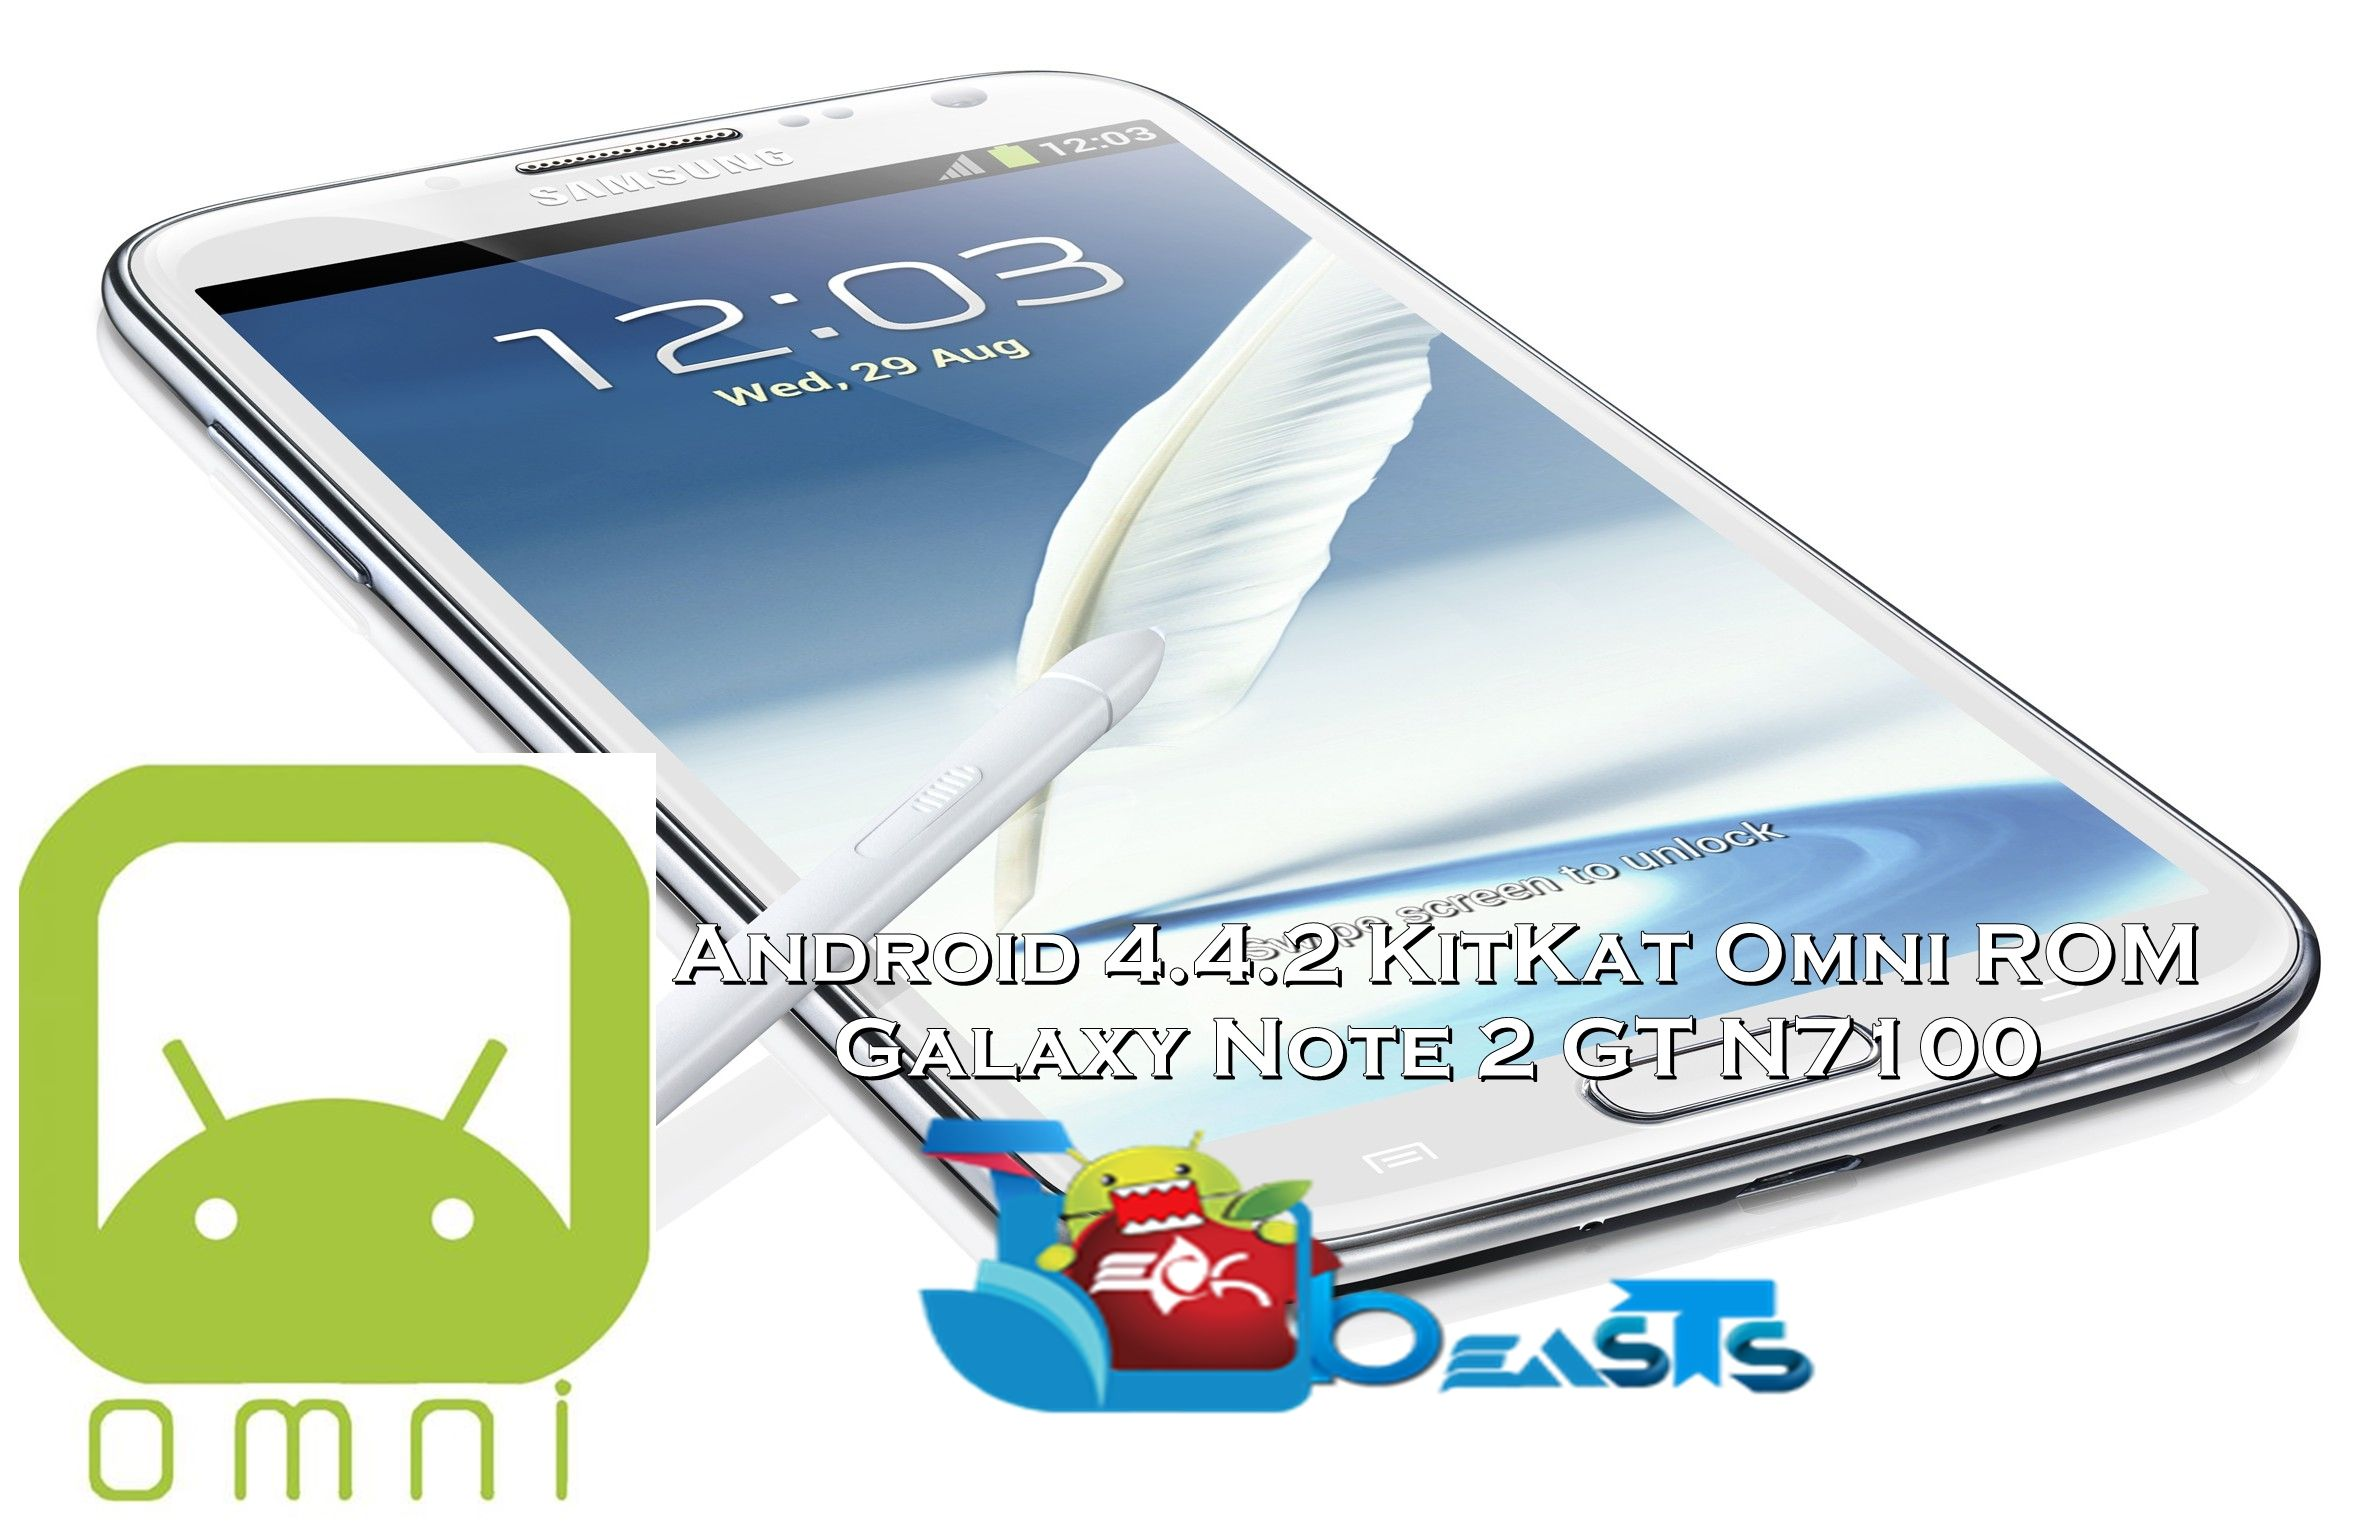 Install Android 4 4 2 on Galaxy Note 2 GT-N7100 using Omni ROM